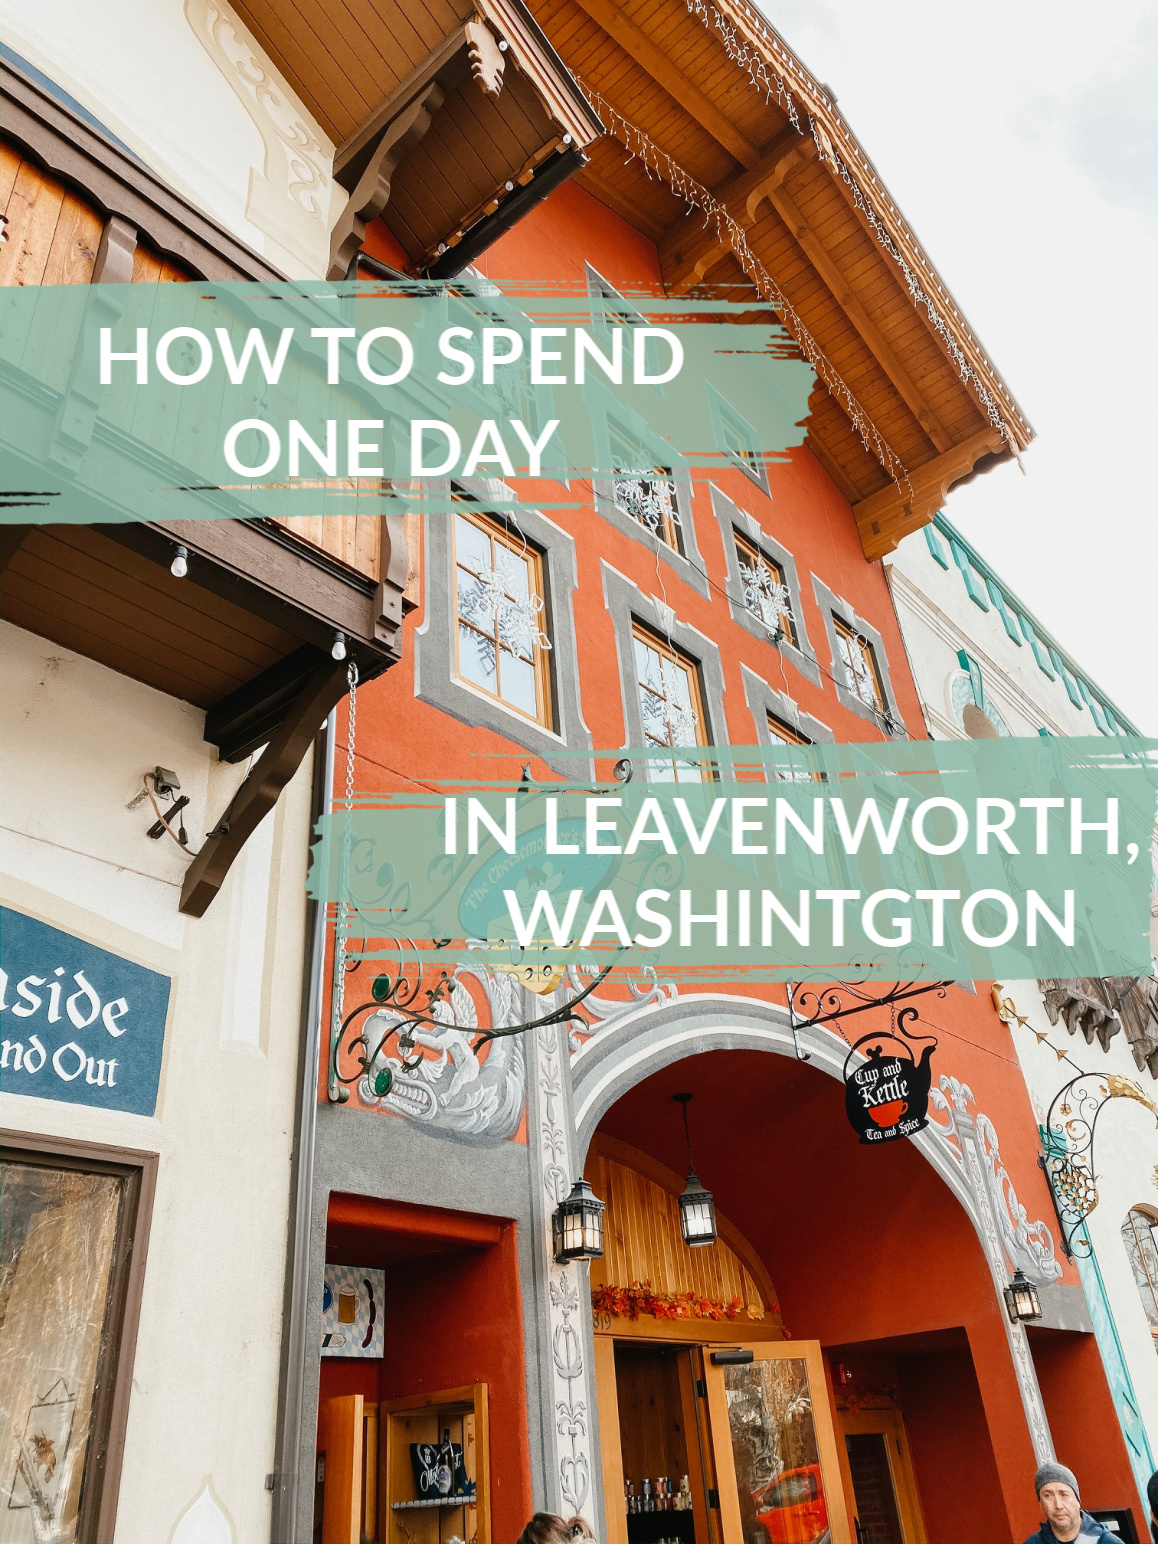 how to spend one day in leavenworth, washington